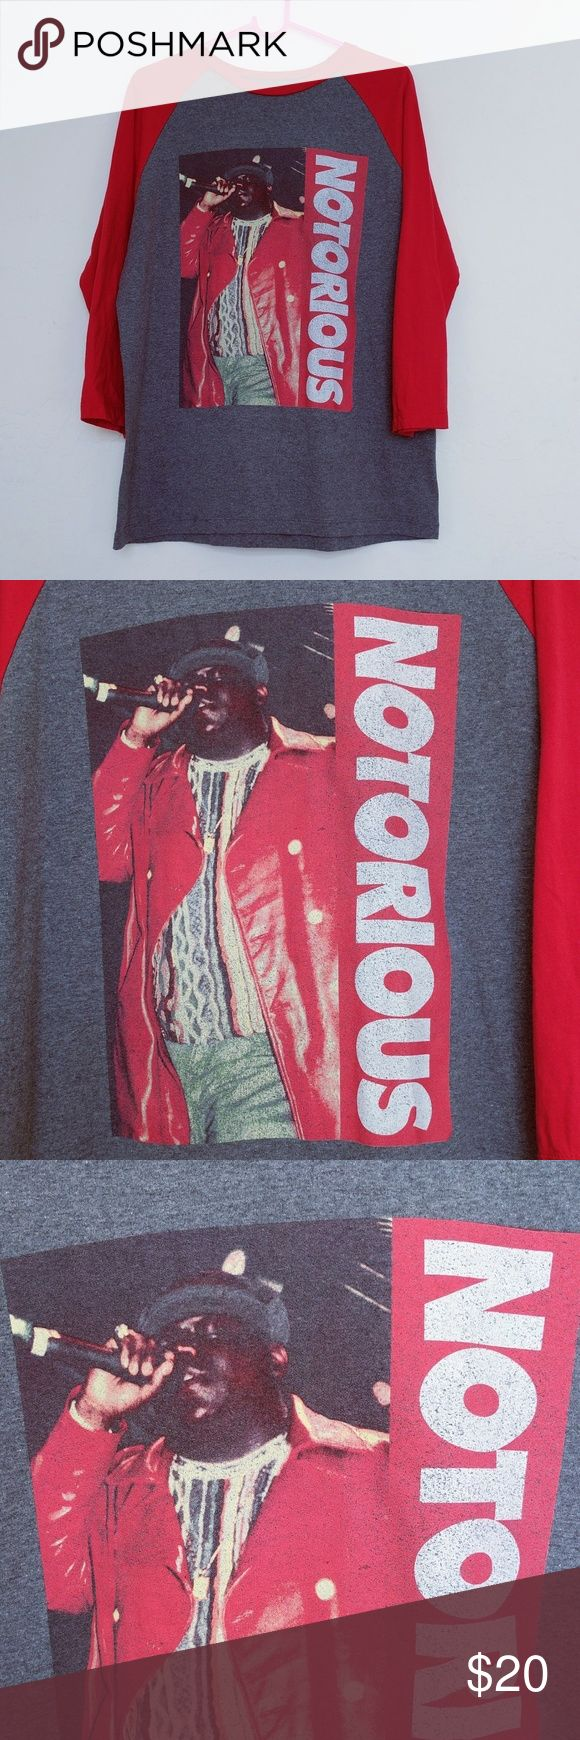 """Notorious BIG concert Brooklyn Mint mens shirt Med Brooklyn Mint Size Medium Mens Shirt Shows some minor wear, see pictures  Notorious BIG on the front with a mic in his hand wearing his red jacket. Then says """"Notorious"""" next to it. Back of the tee says Notorious B.I.G. LIVE New York City, Ny Thu. Aug. 3, 1995  Armpit to Bottm Hem: 19 inches Armpit to Armpit (one way): 22 inches Armpit to Sleeve Hem: 15 inches   3/4 sleeves 